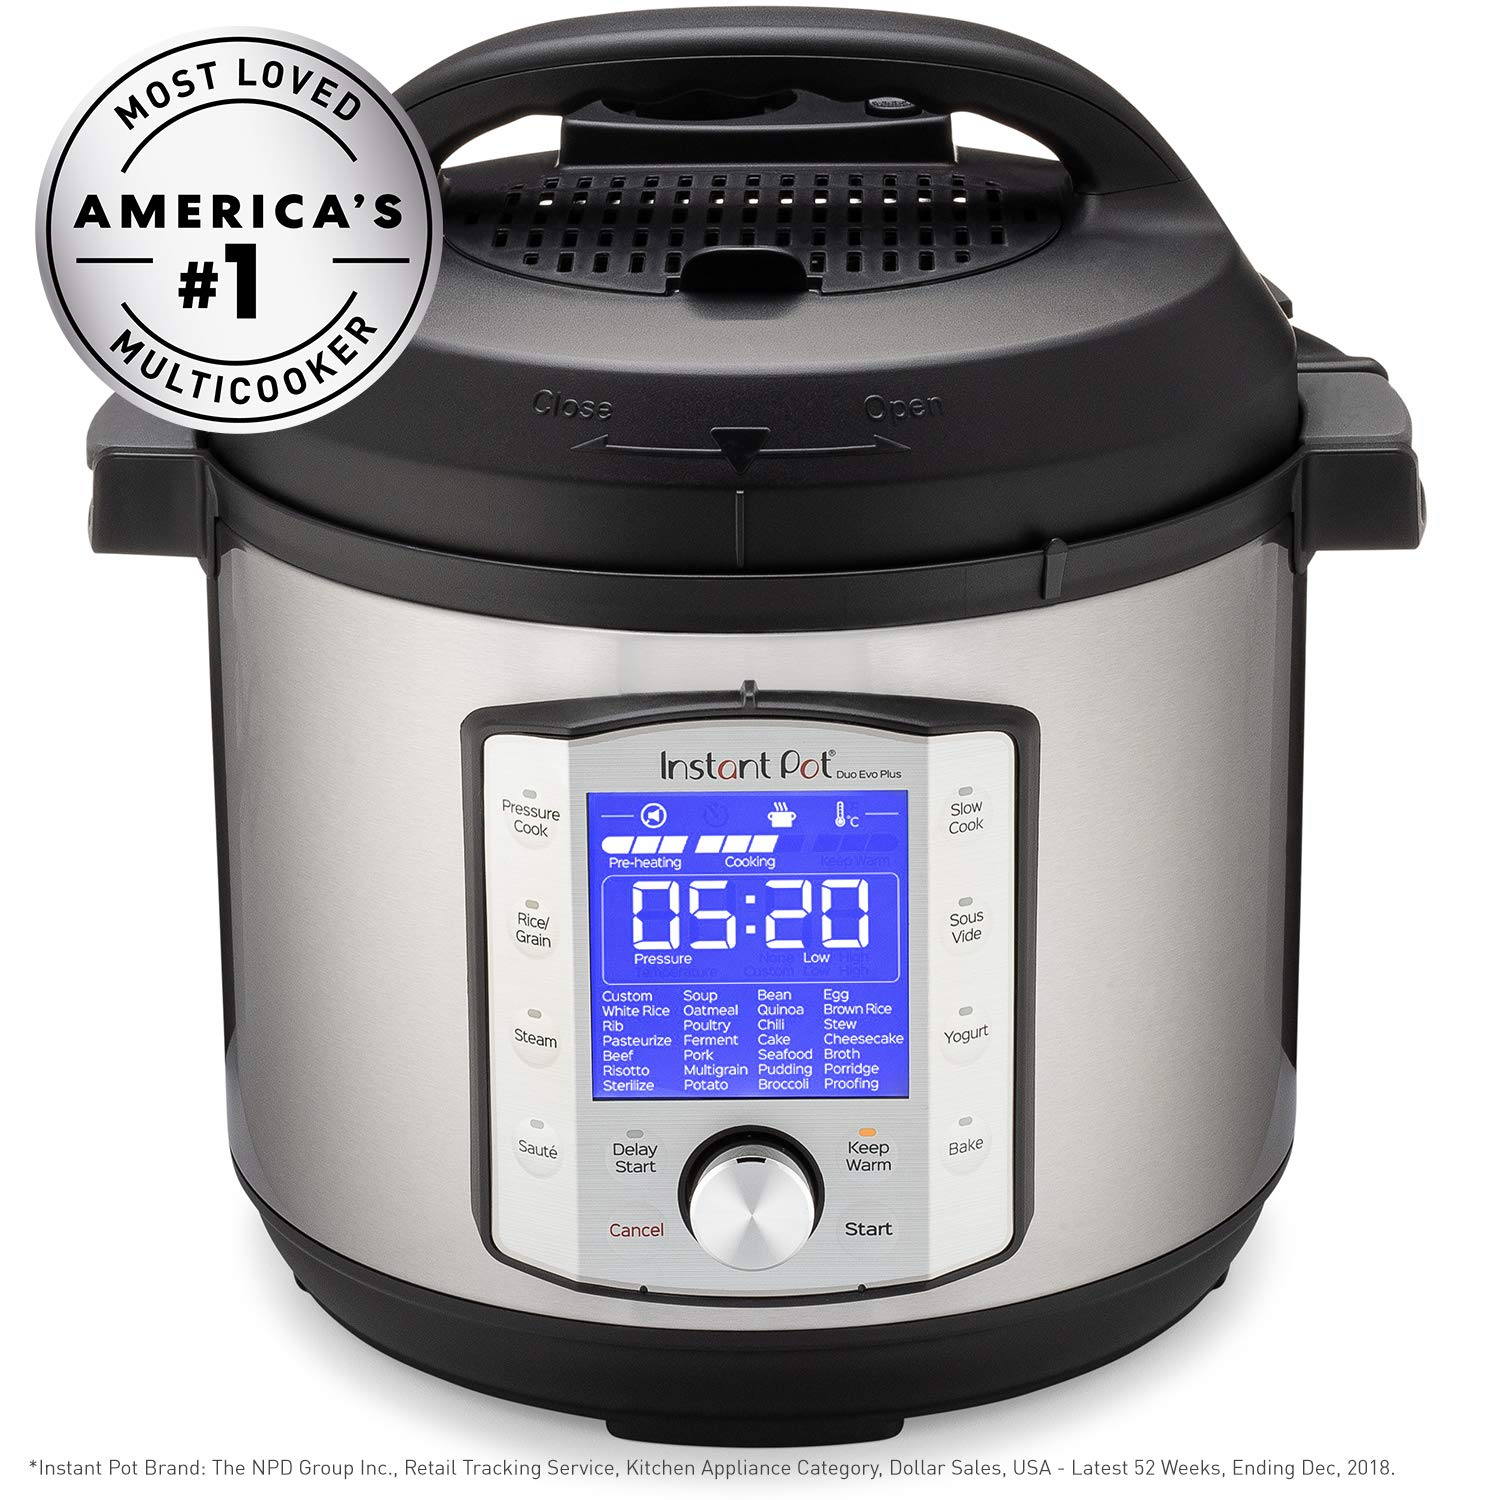 Instant Pot-best gifts for moms